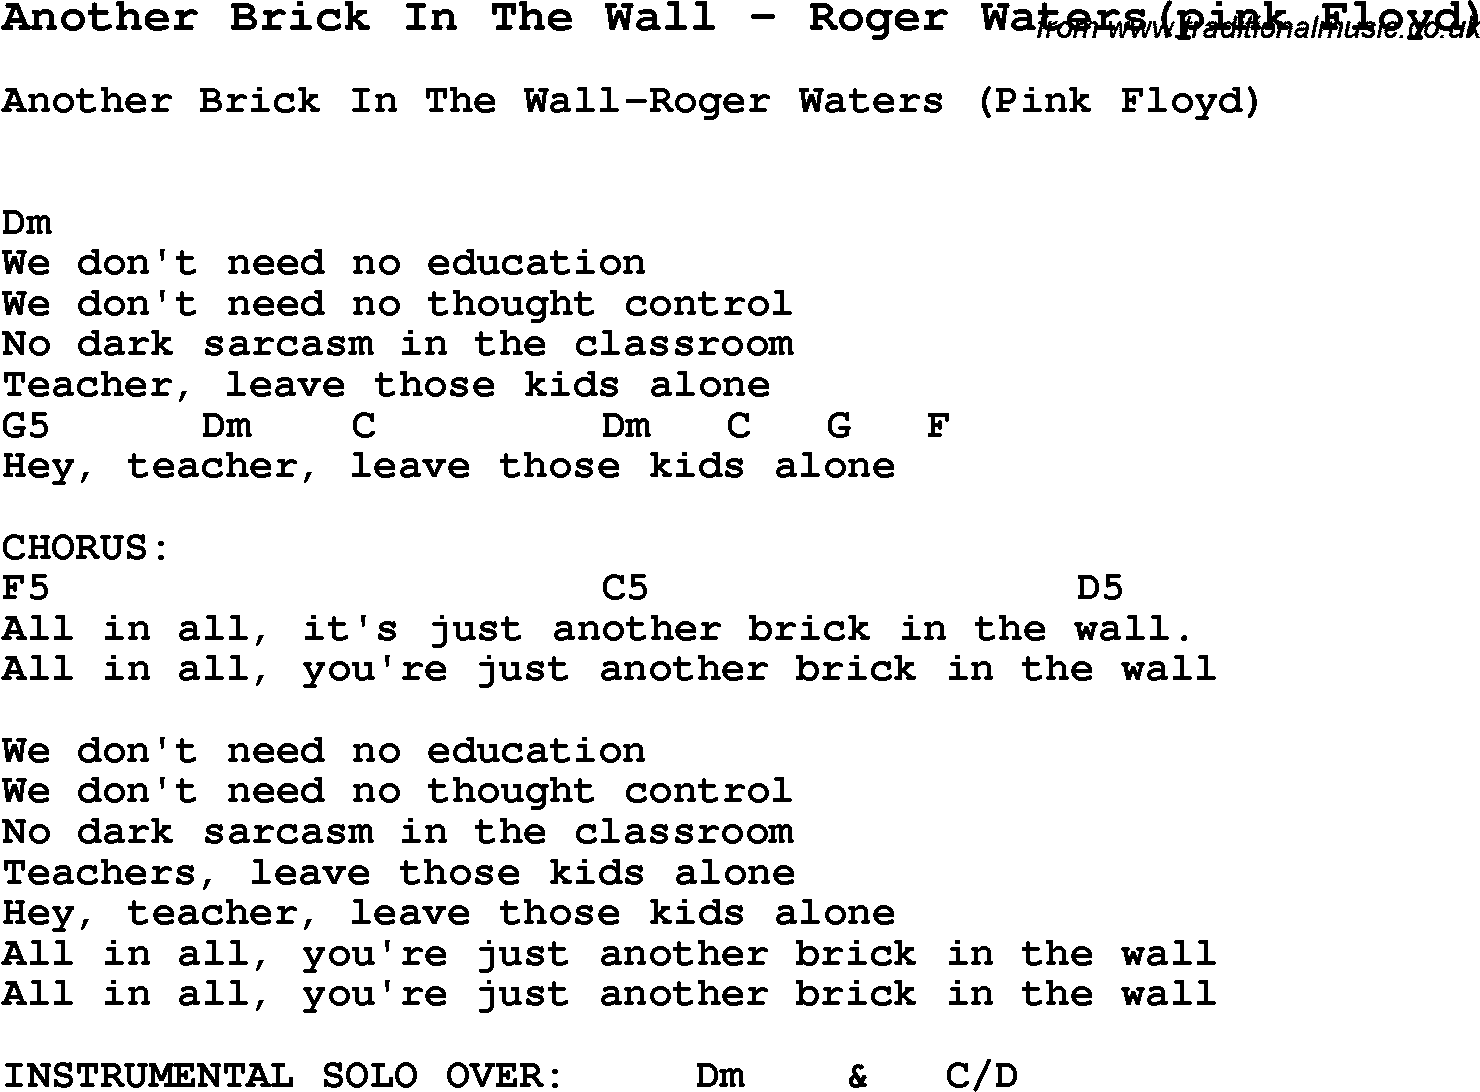 Pink Floyd Lyrics Another Brick In The Wall By Roger Waters Pink Floyd With Lyrics Ukulele Chords Songs Pink Floyd Lyrics Guitar Chords And Lyrics